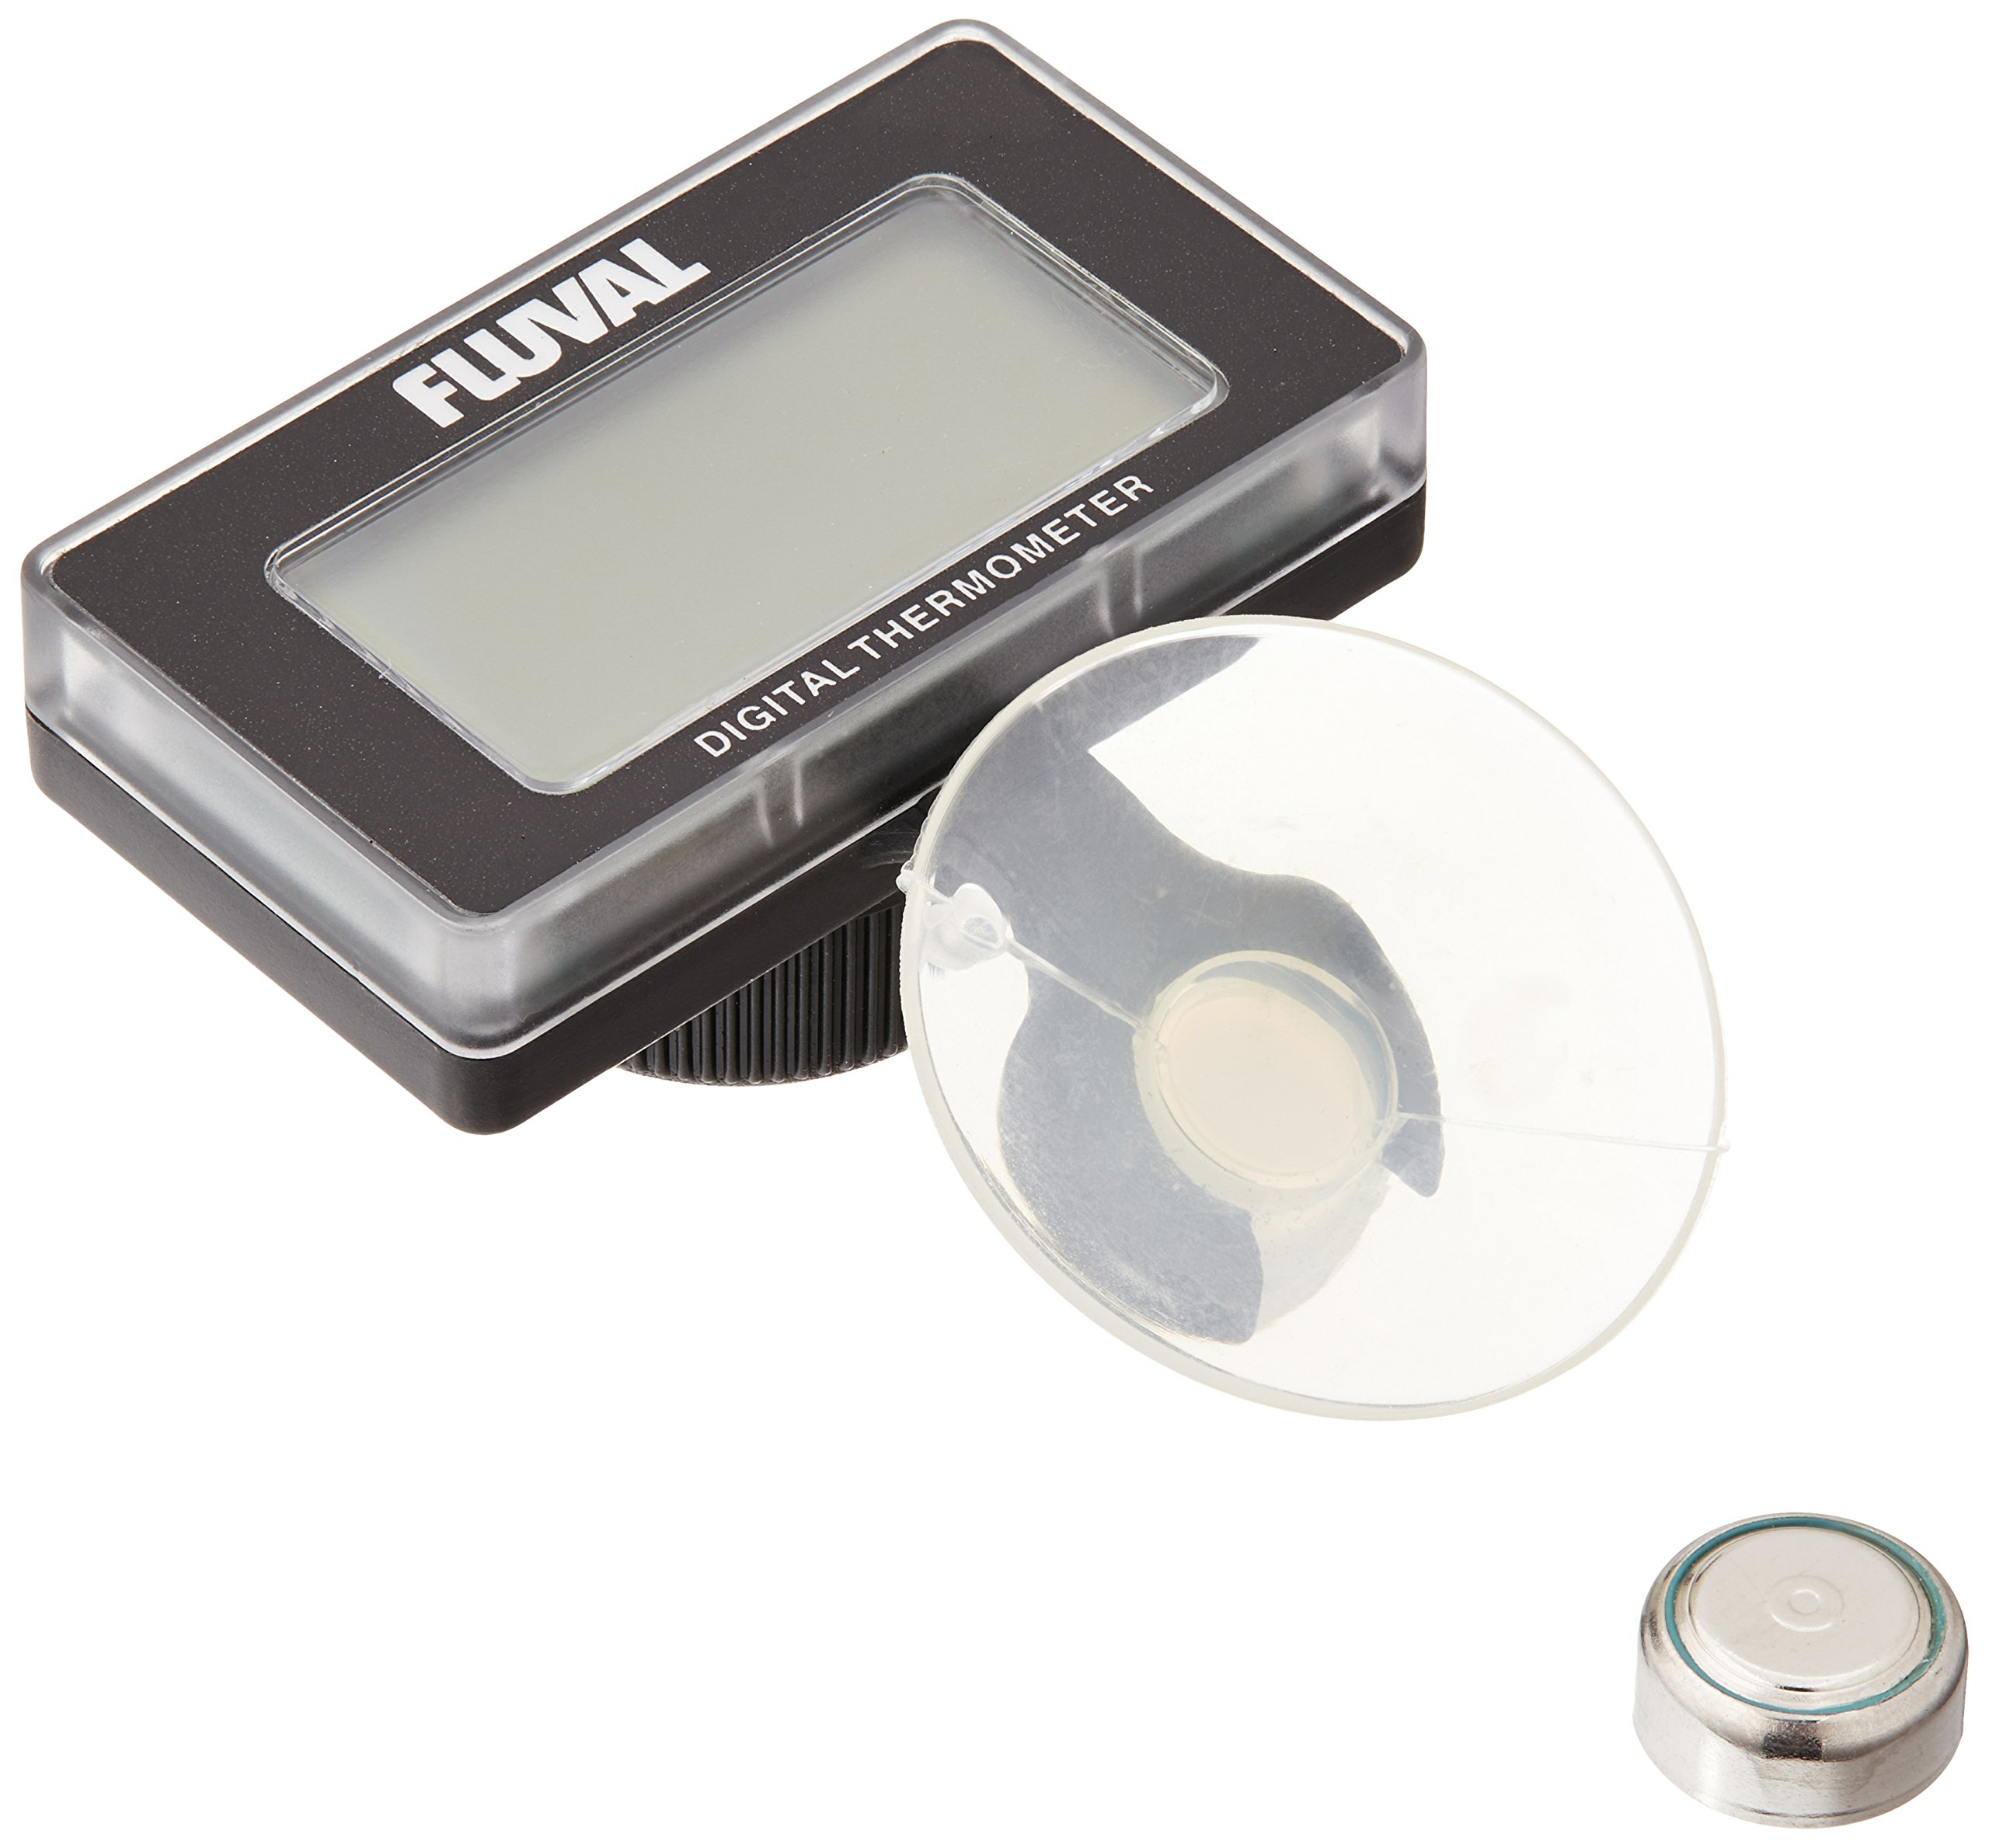 Fluval Submersible Digital Thermometer